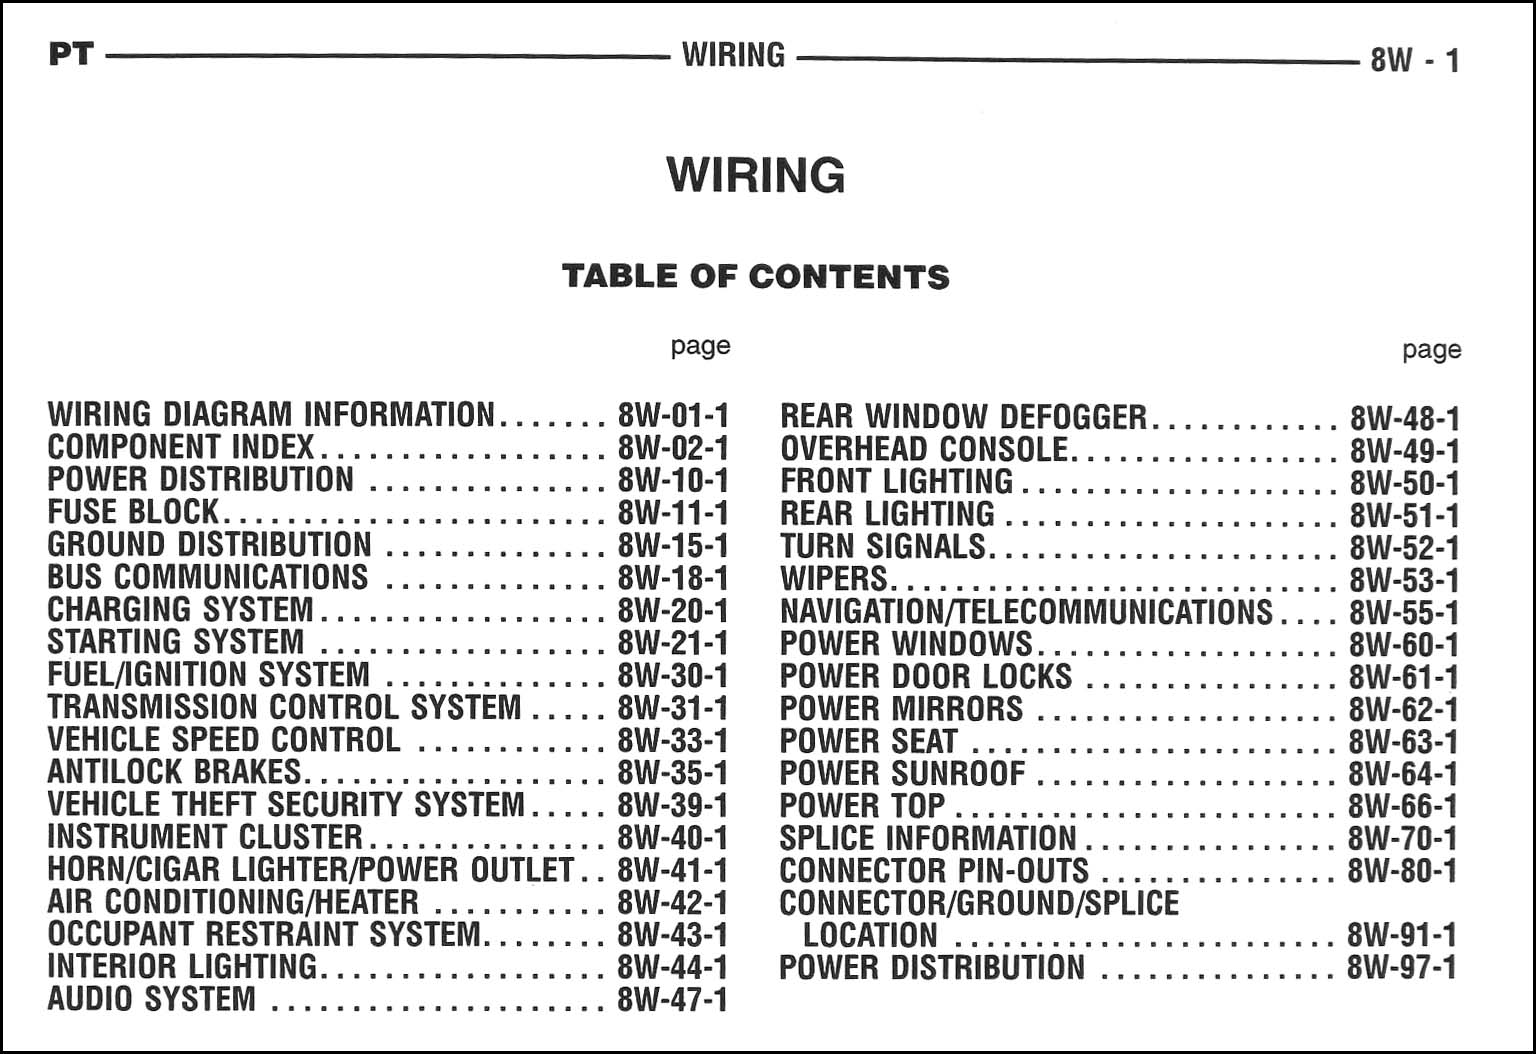 2005 Chrysler Pt Cruiser Wiring Diagram Manual Original 1941 Ford Harness Table Of Contents Page